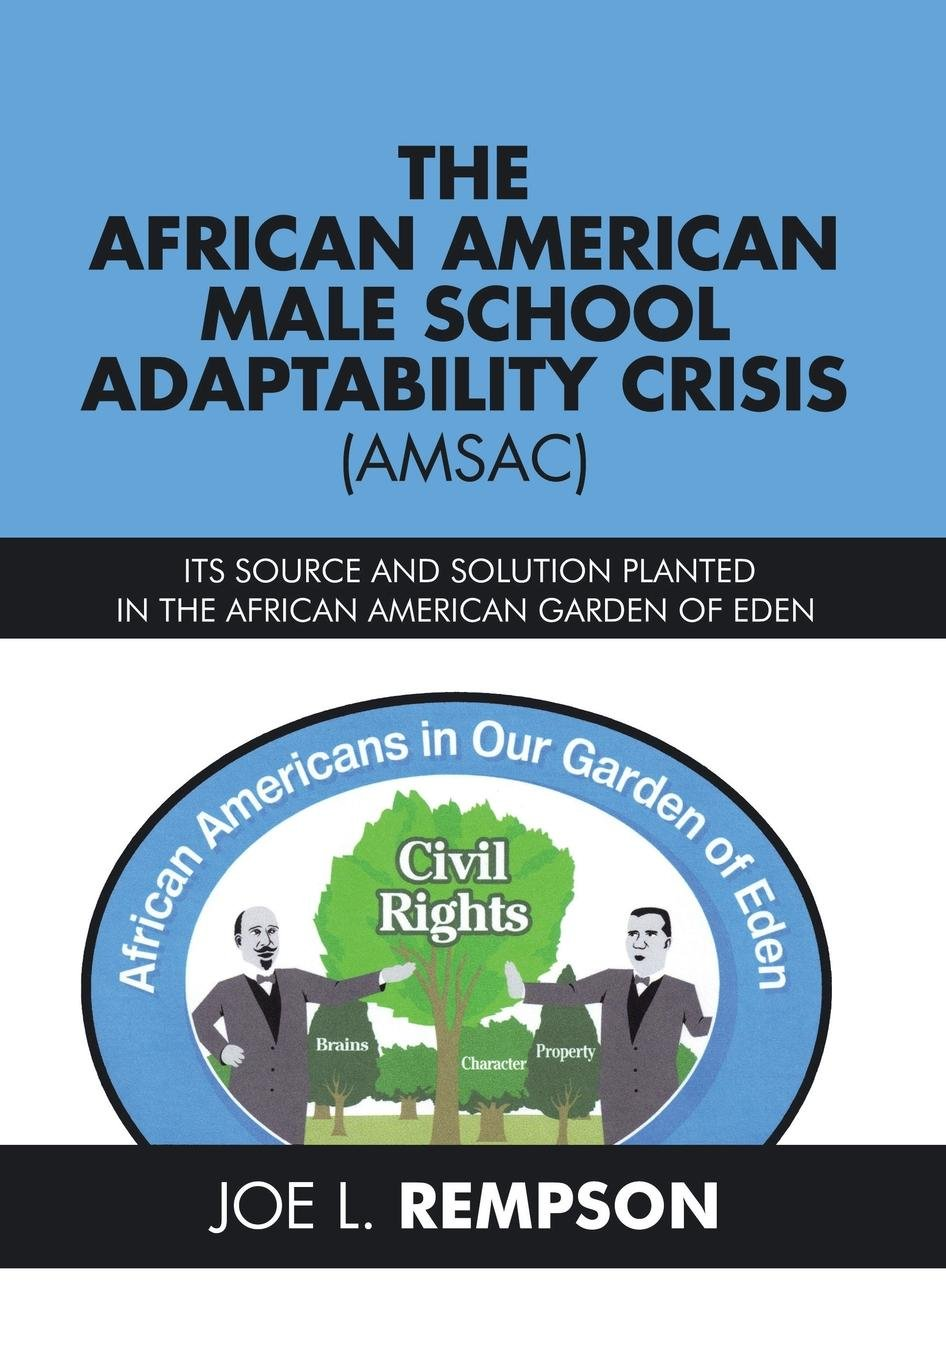 Download The African American Male School Adaptability Crisis (Amsac): Its Source and Solution Planted in the African American Garden of Eden PDF